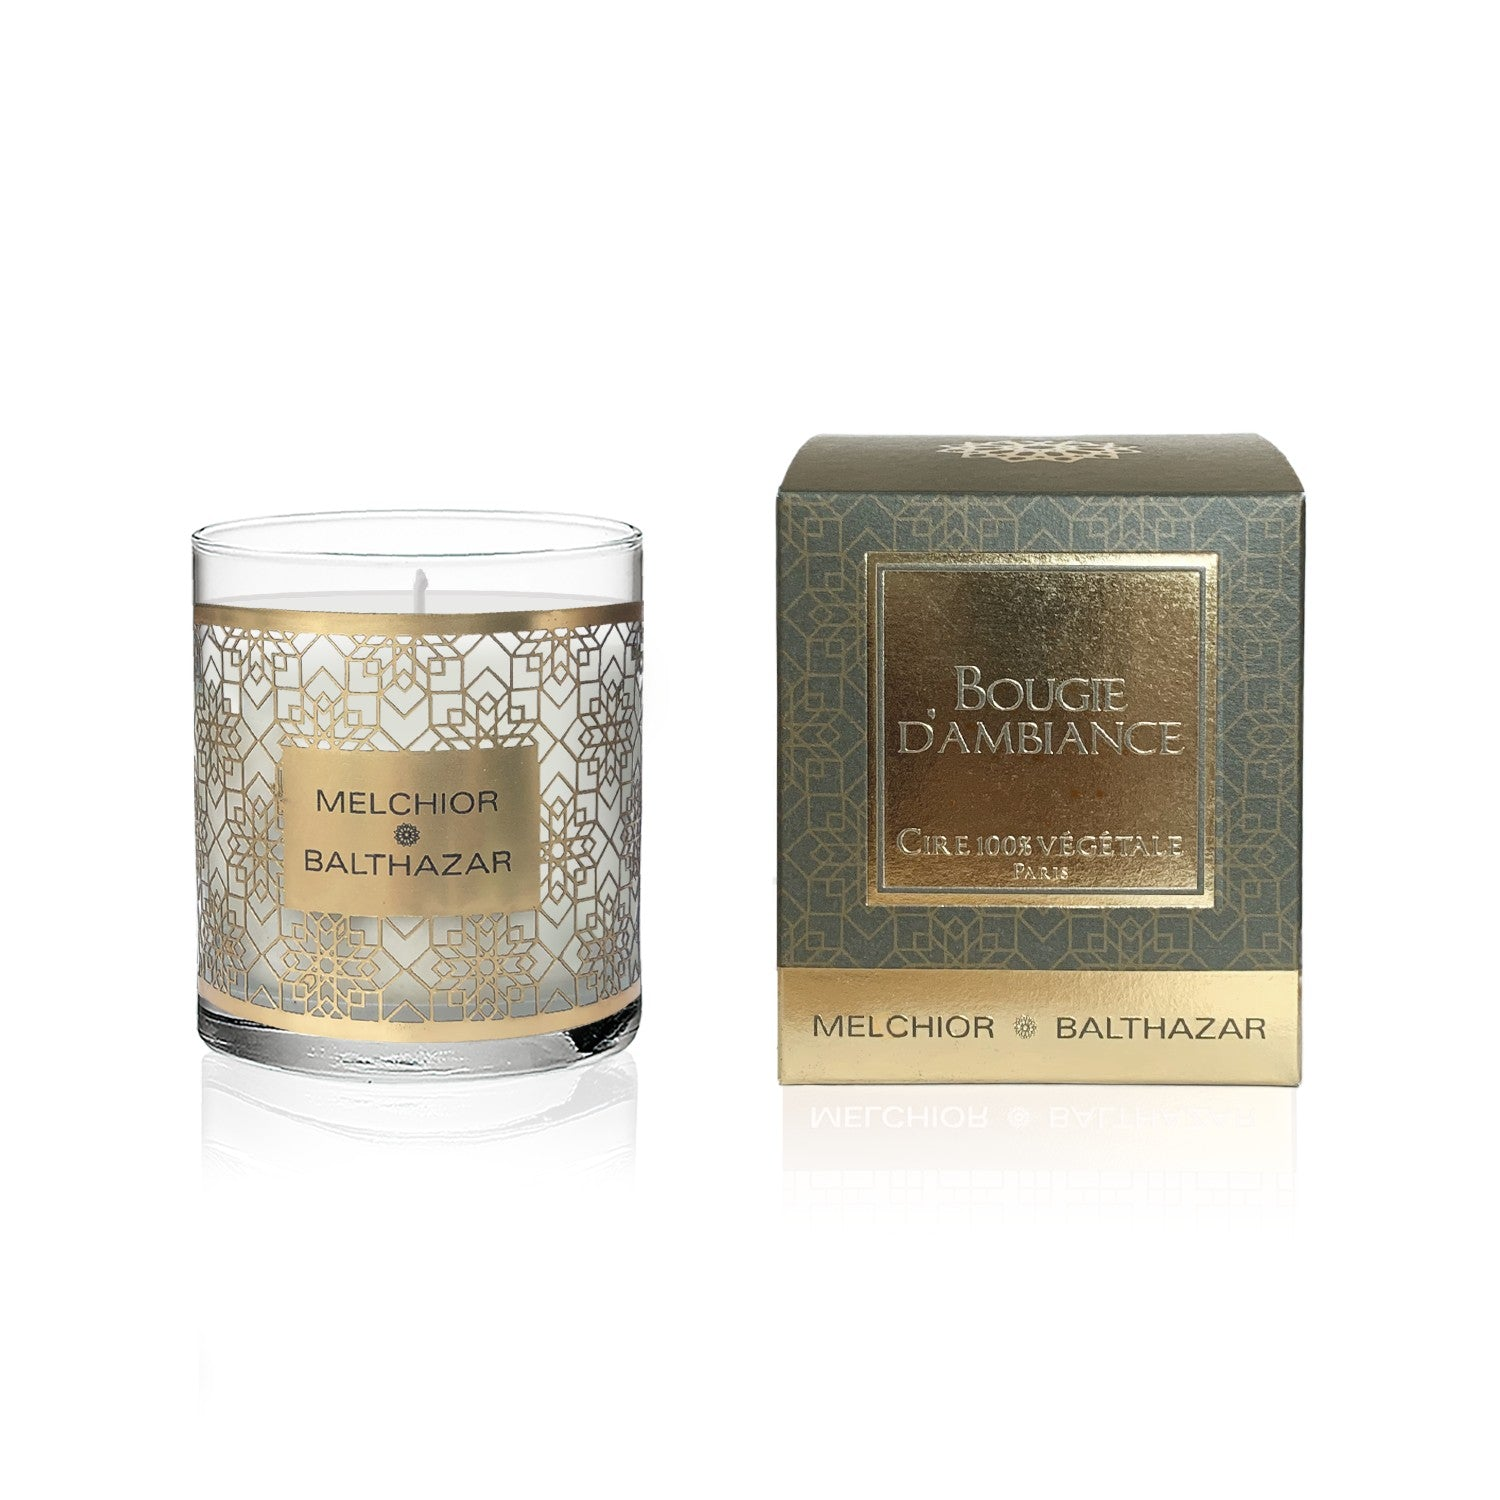 Charnel Incense - Melchior & Balthazar ambience candle